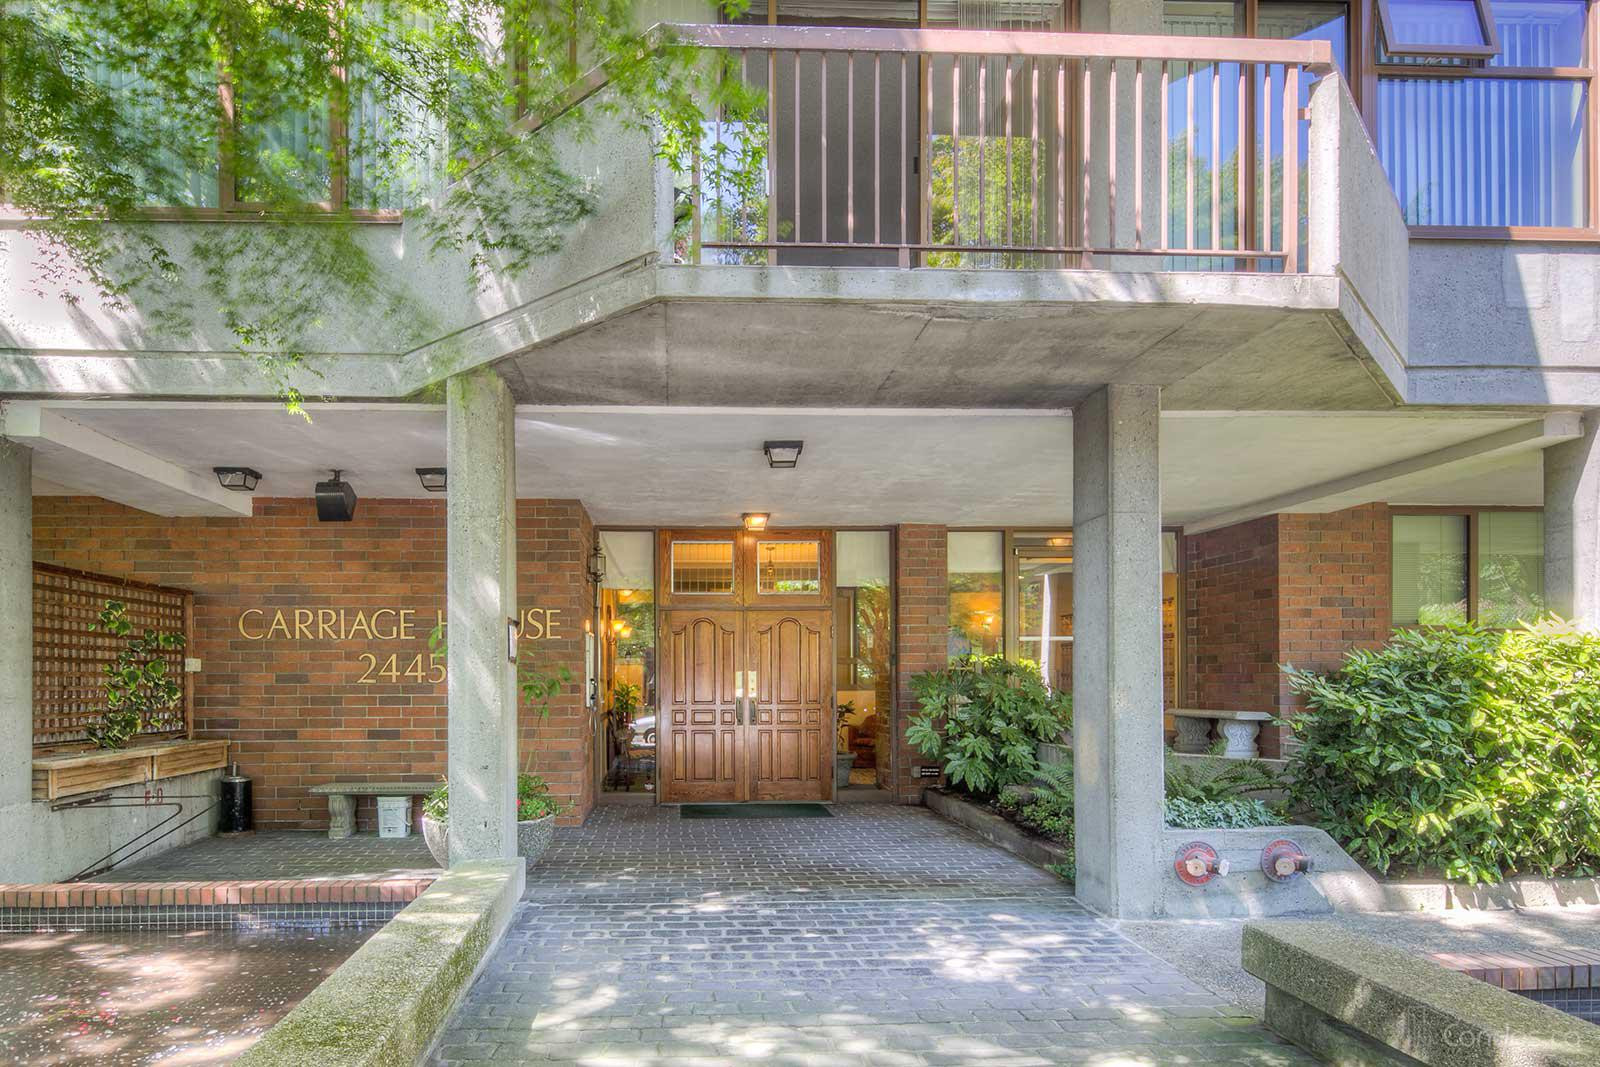 Carriage House at 2445 W 3rd Ave, Vancouver 1